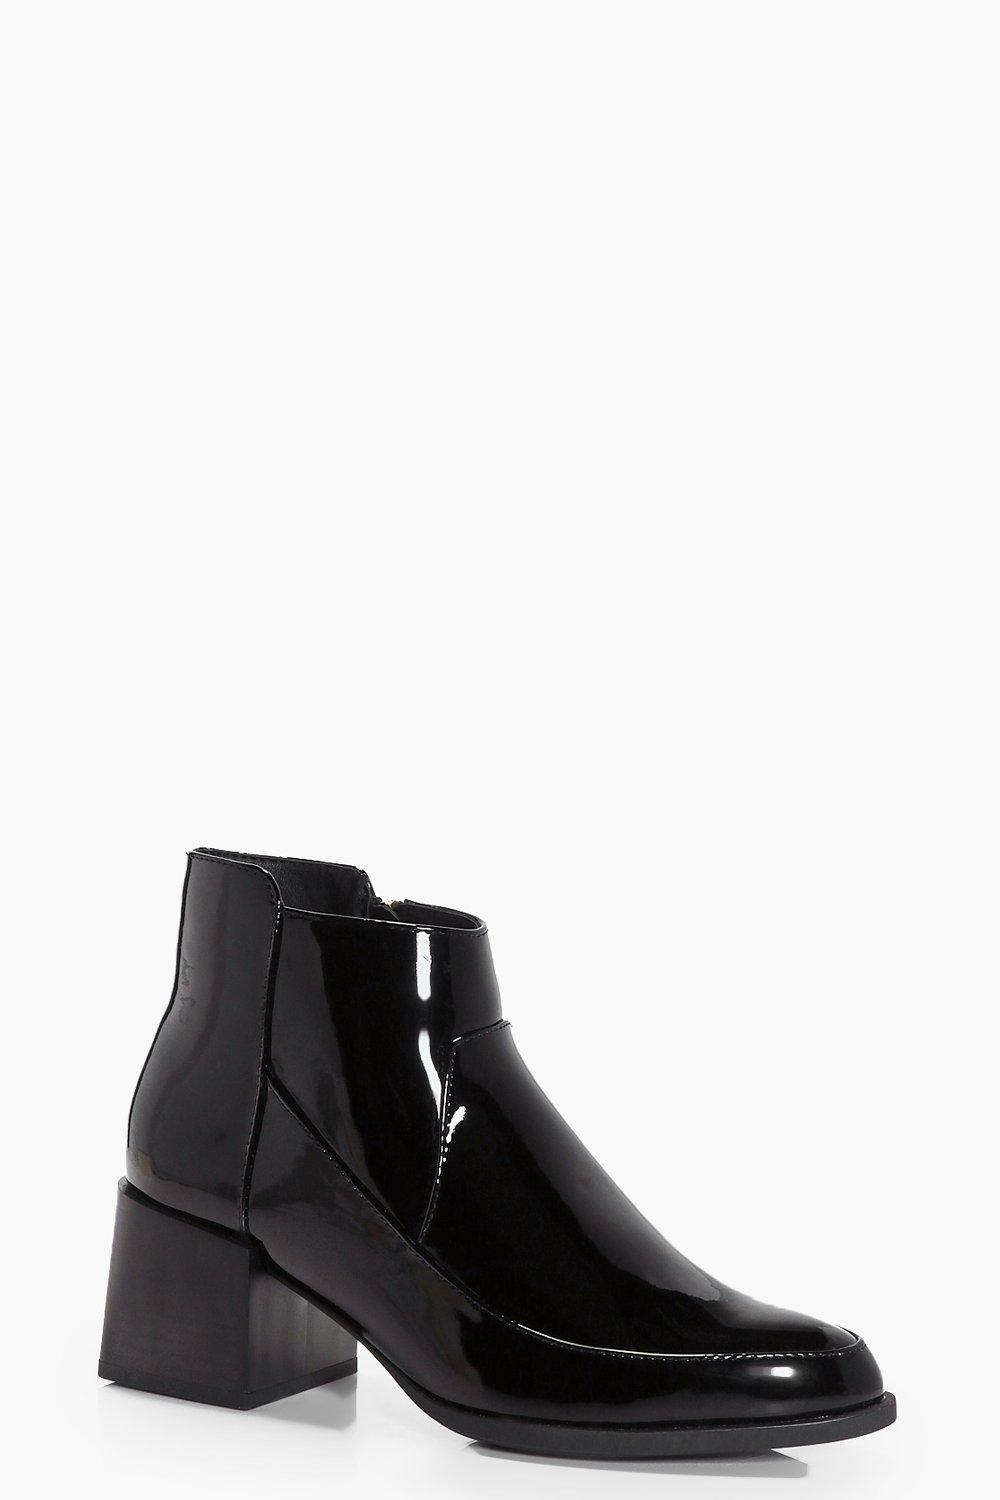 Grace Block Heel Patent Ankle Boot